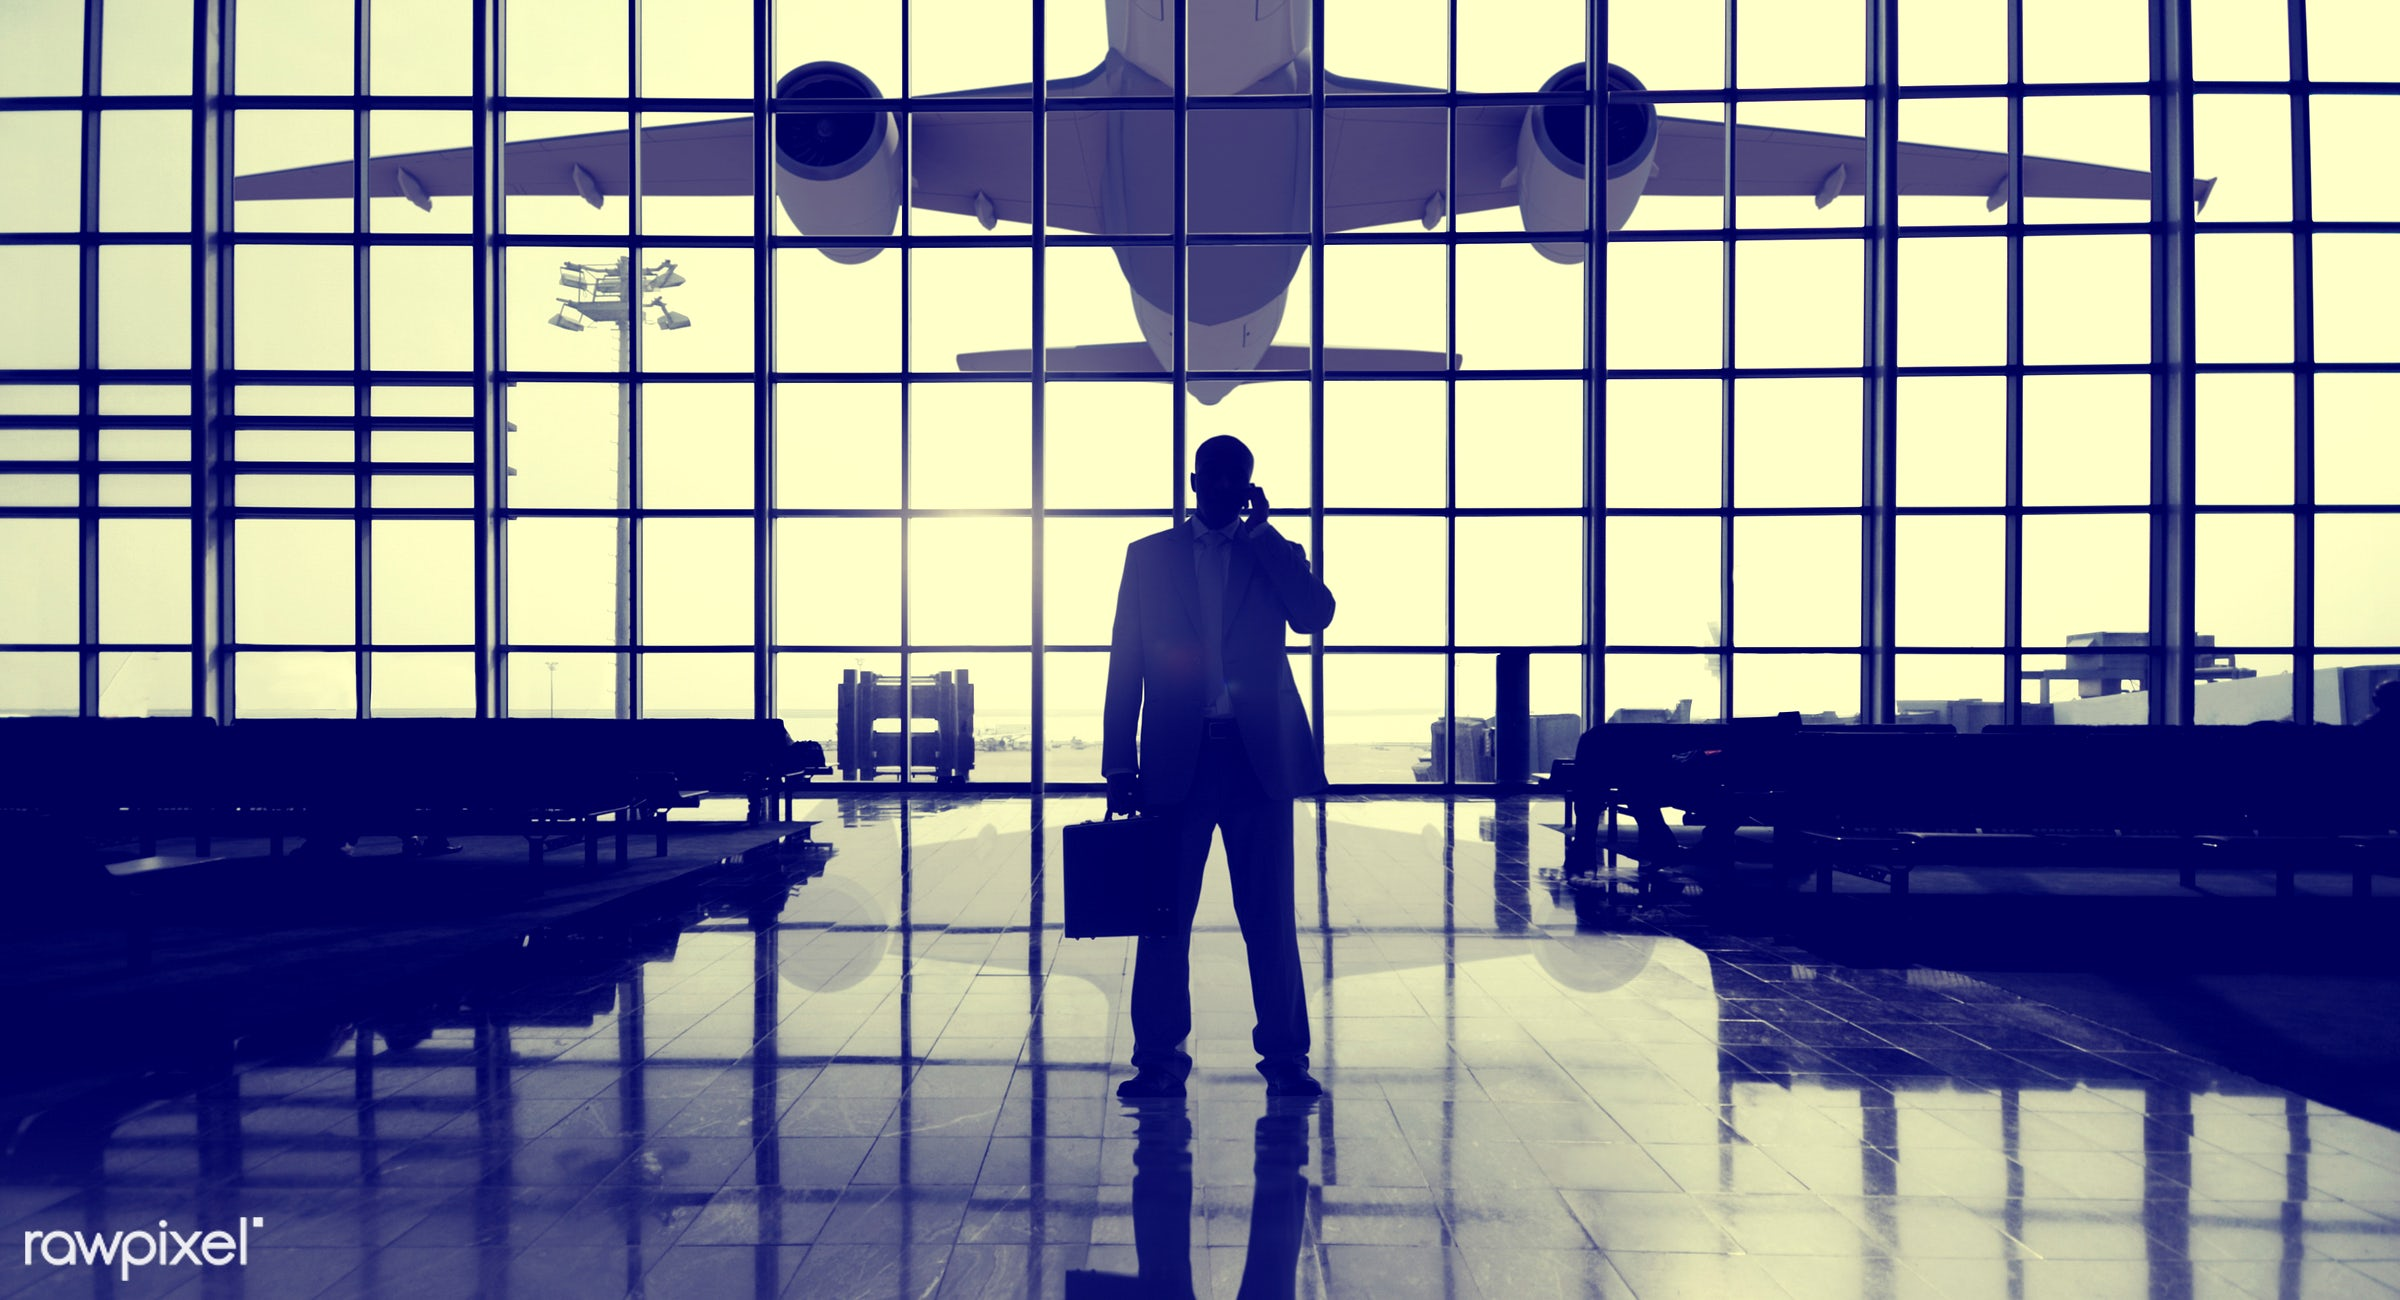 contemporary, airplane, airport, airport lounge, alone, architecture, boarding gate, briefcase, built structure, business,...